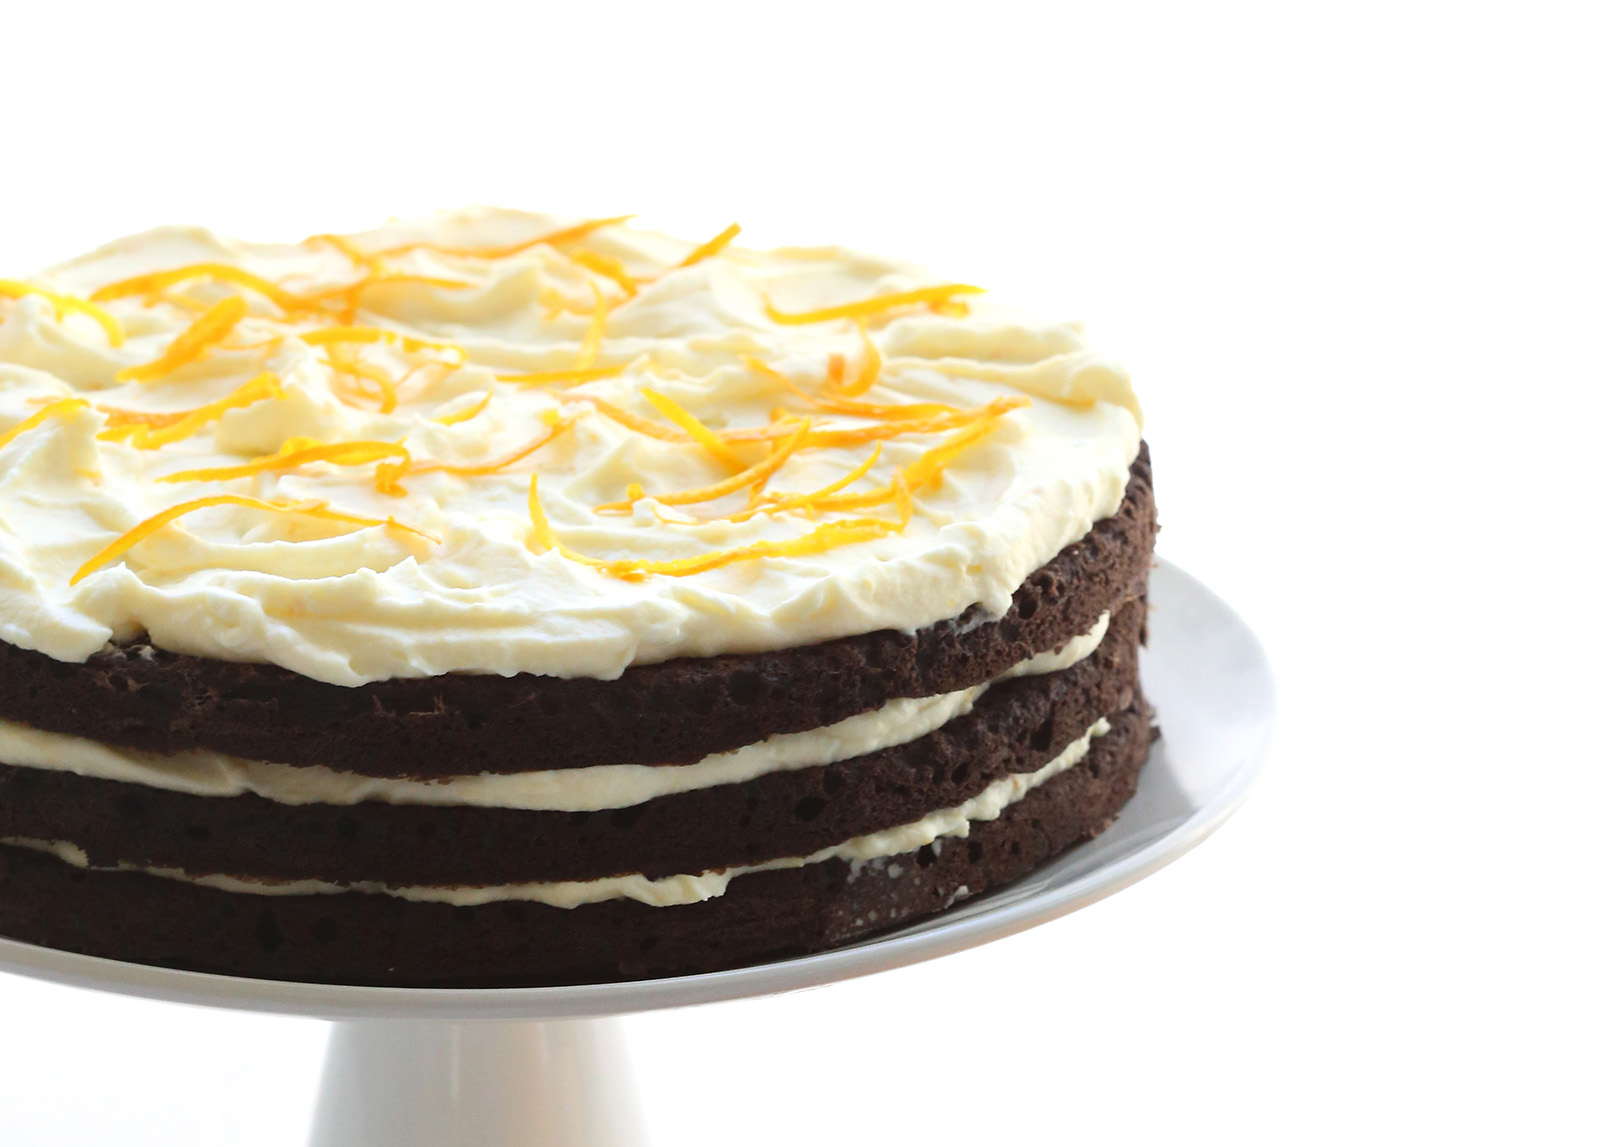 Chocolate Cake With Orange Mascarpone Frosting